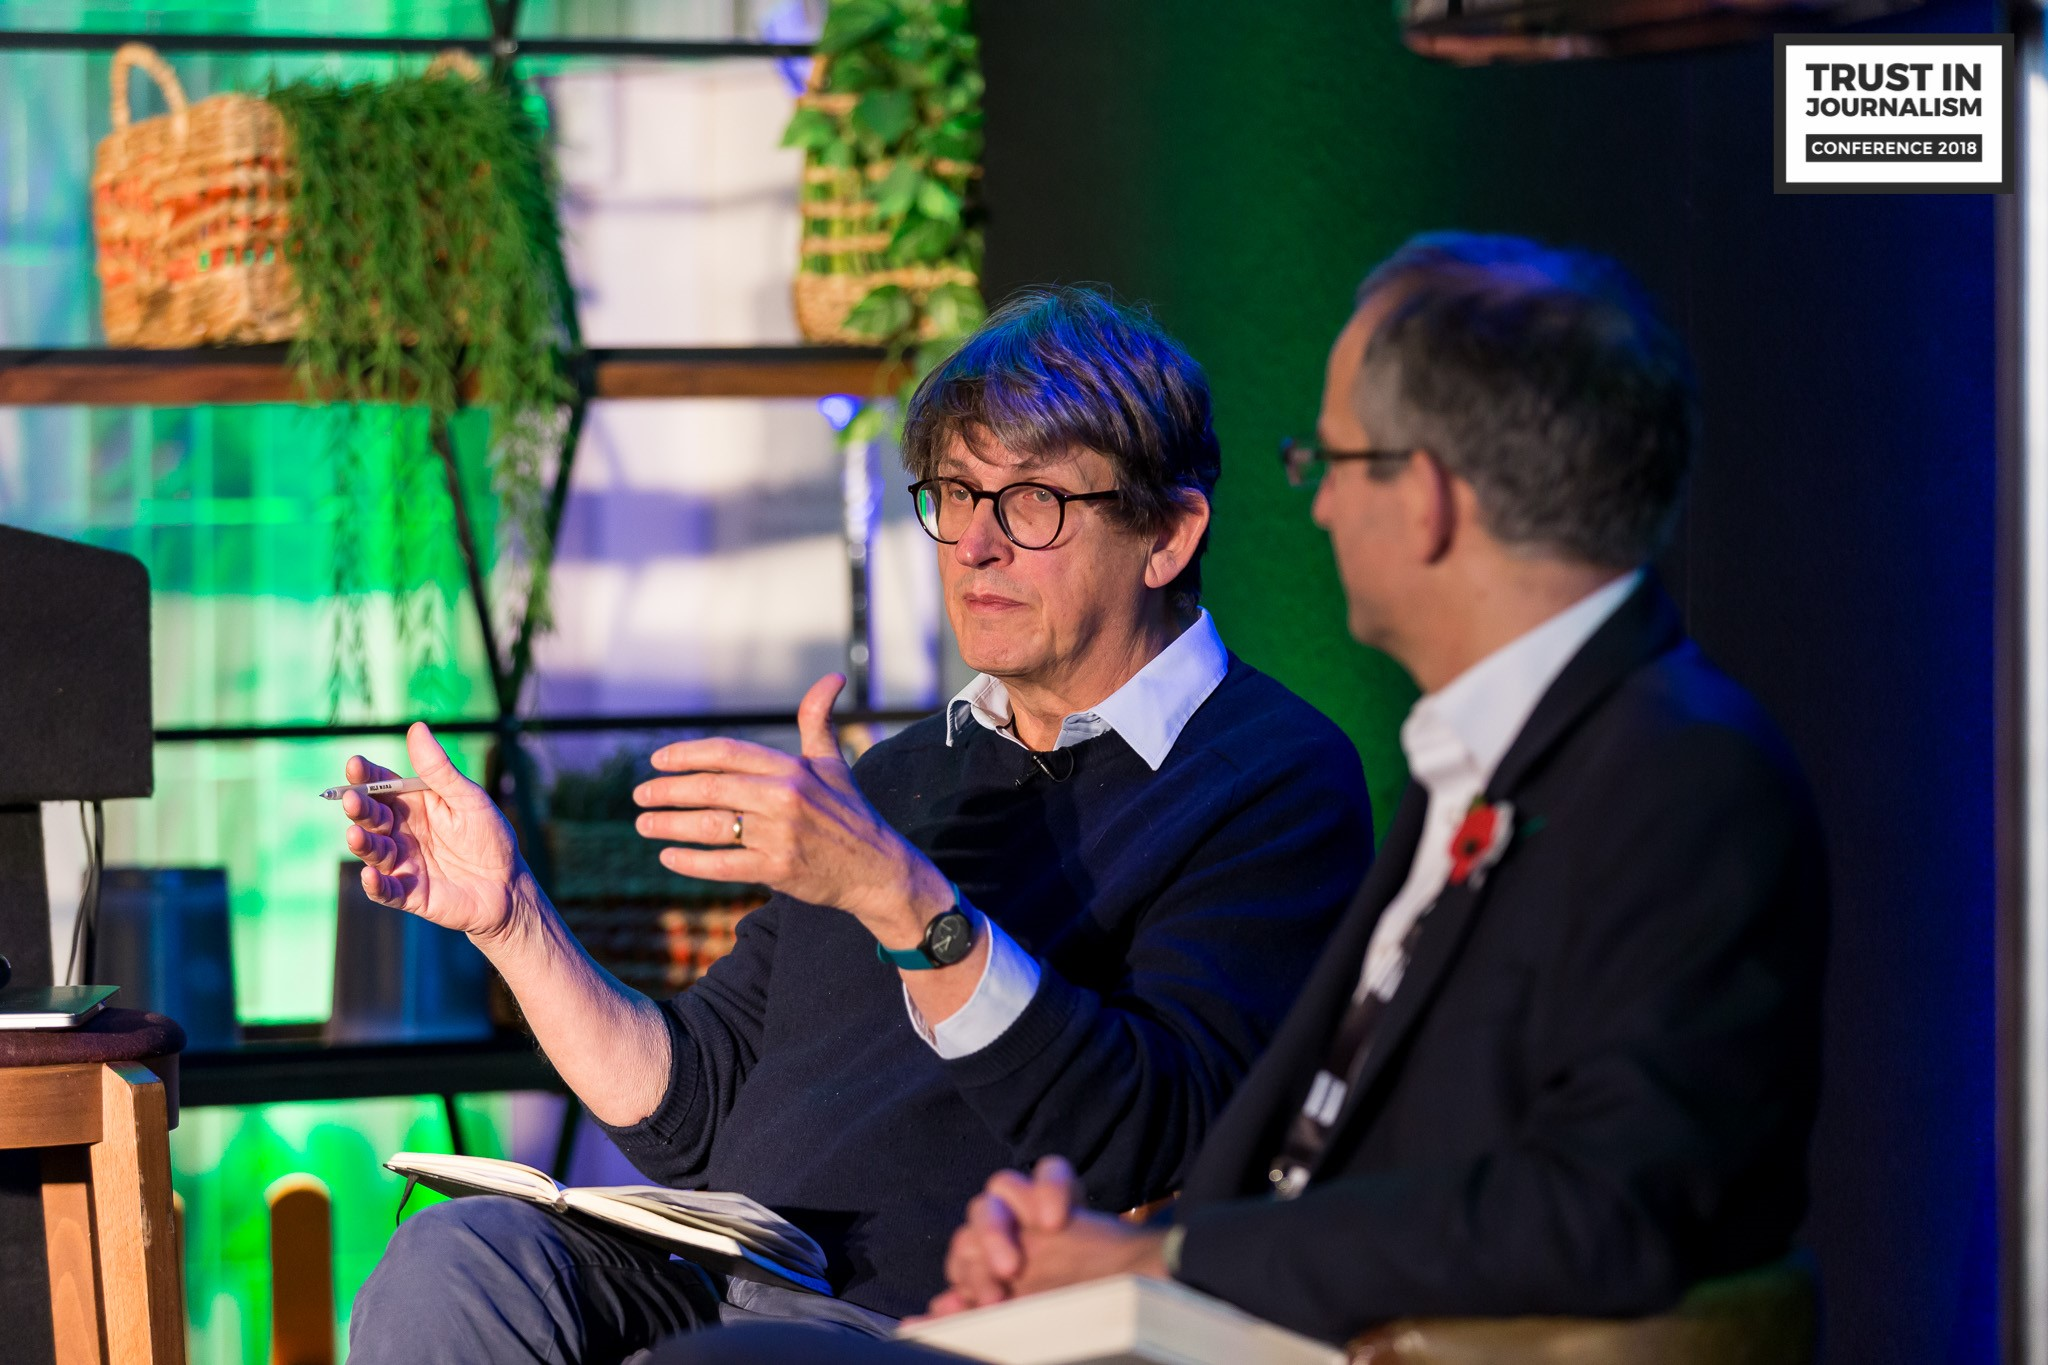 Alan Rusbridger - The Guardian - Breaking News - Jonathan Heawood - IMPRESS Trust in Journalism Conference 2018